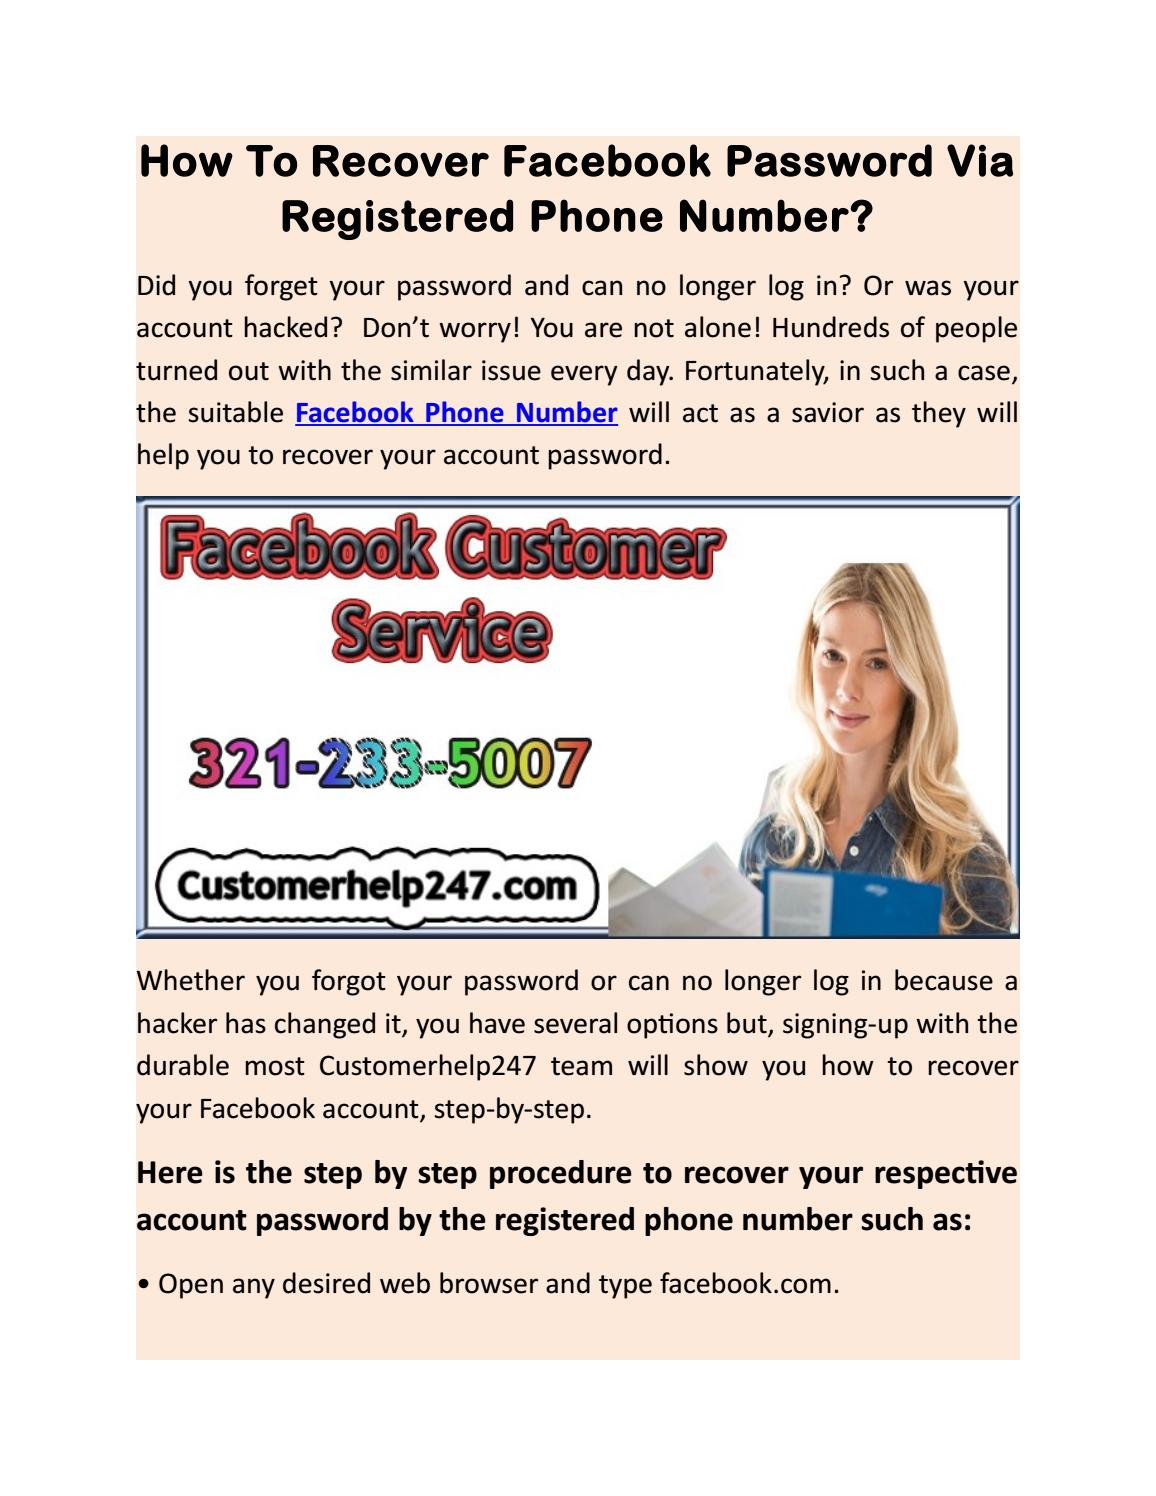 HOW TO RECOVER FACEBOOK PASSWORD VIA REGISTERED PHONE NUMBER